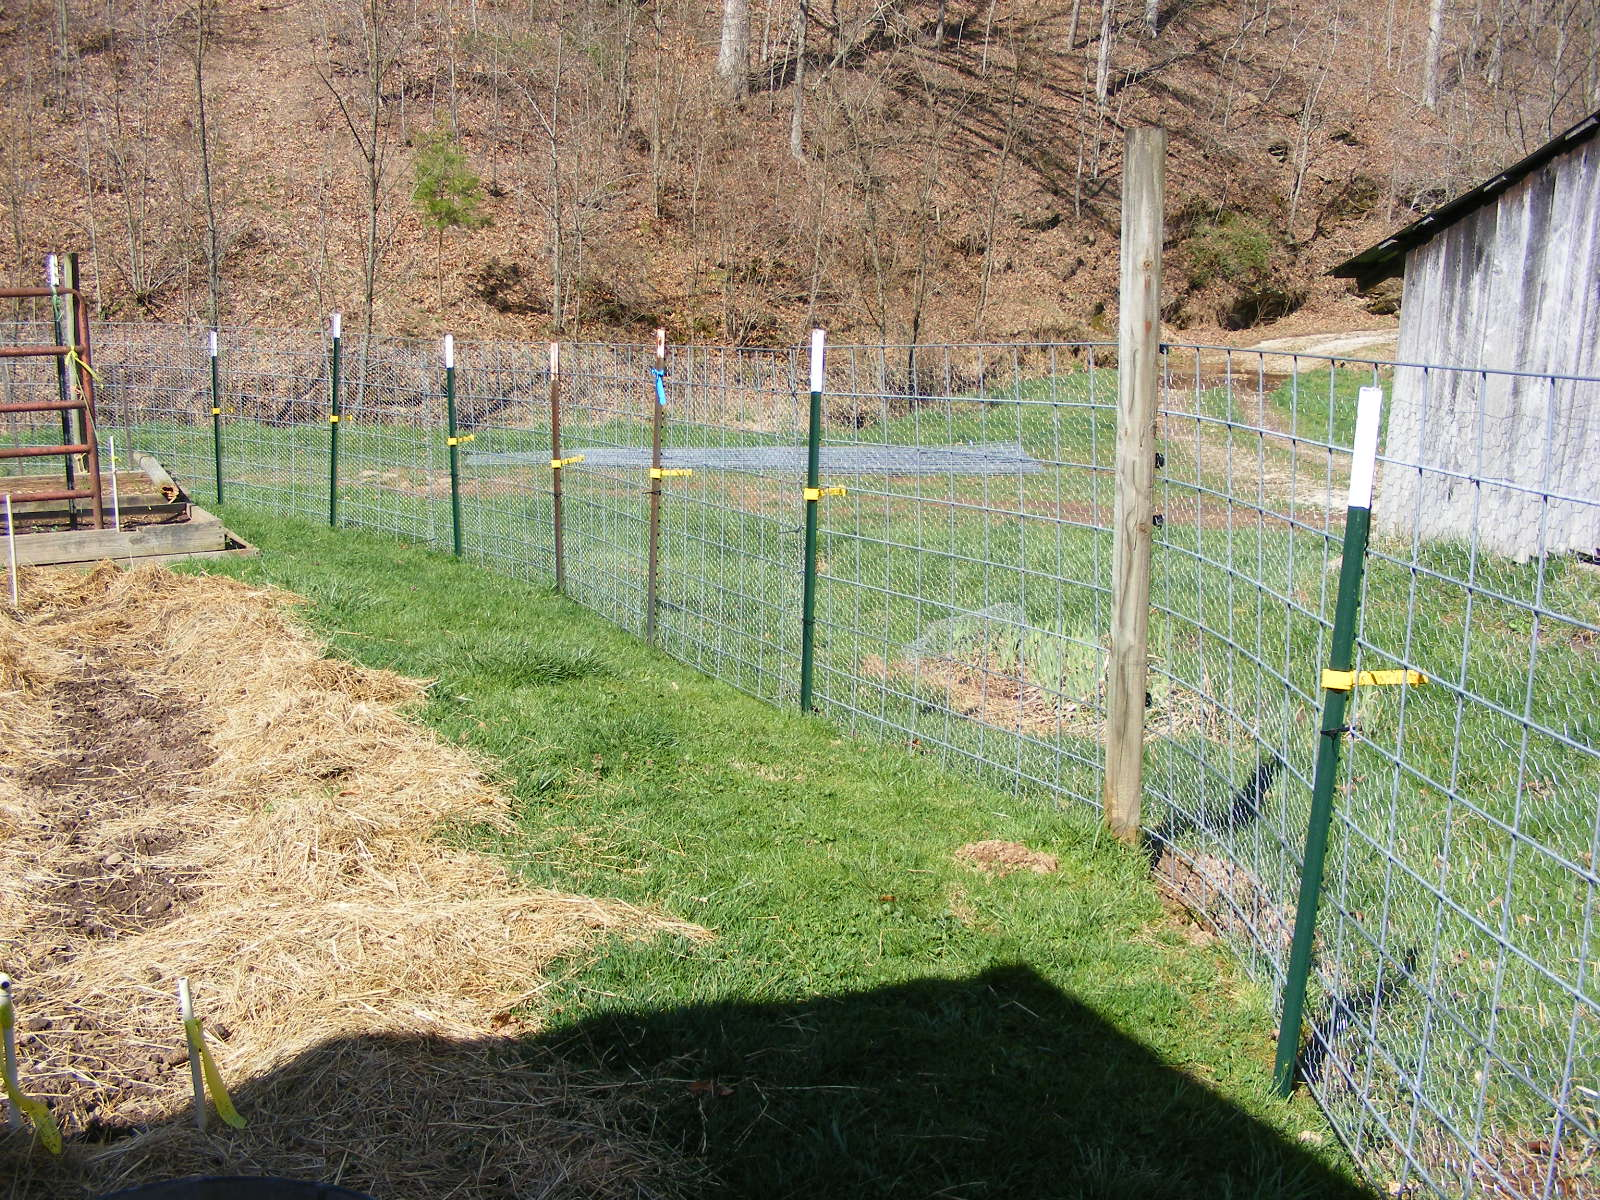 Intermittent farm report garden fencing let me count